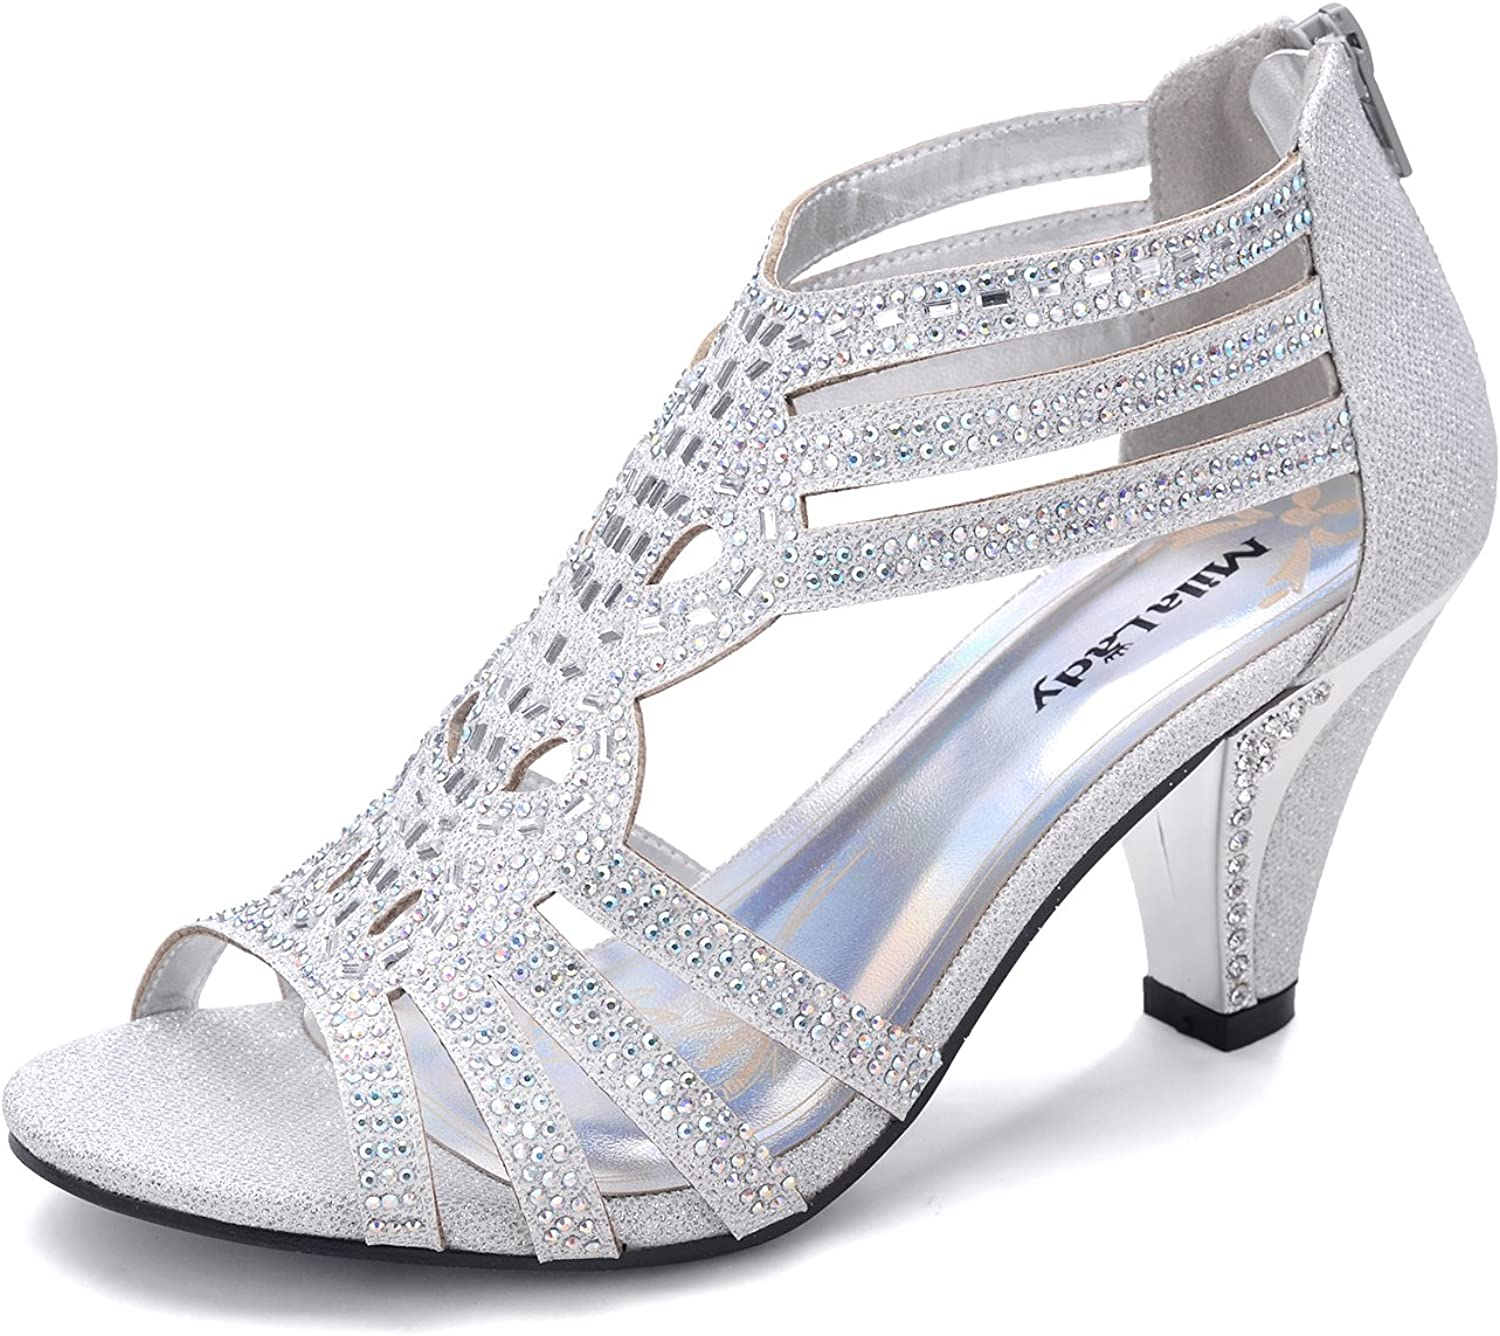 Chicago Mall Mila Lady Women's Lexie Crystal Dress Kimi25 Lowest price challenge Heeled Sandals